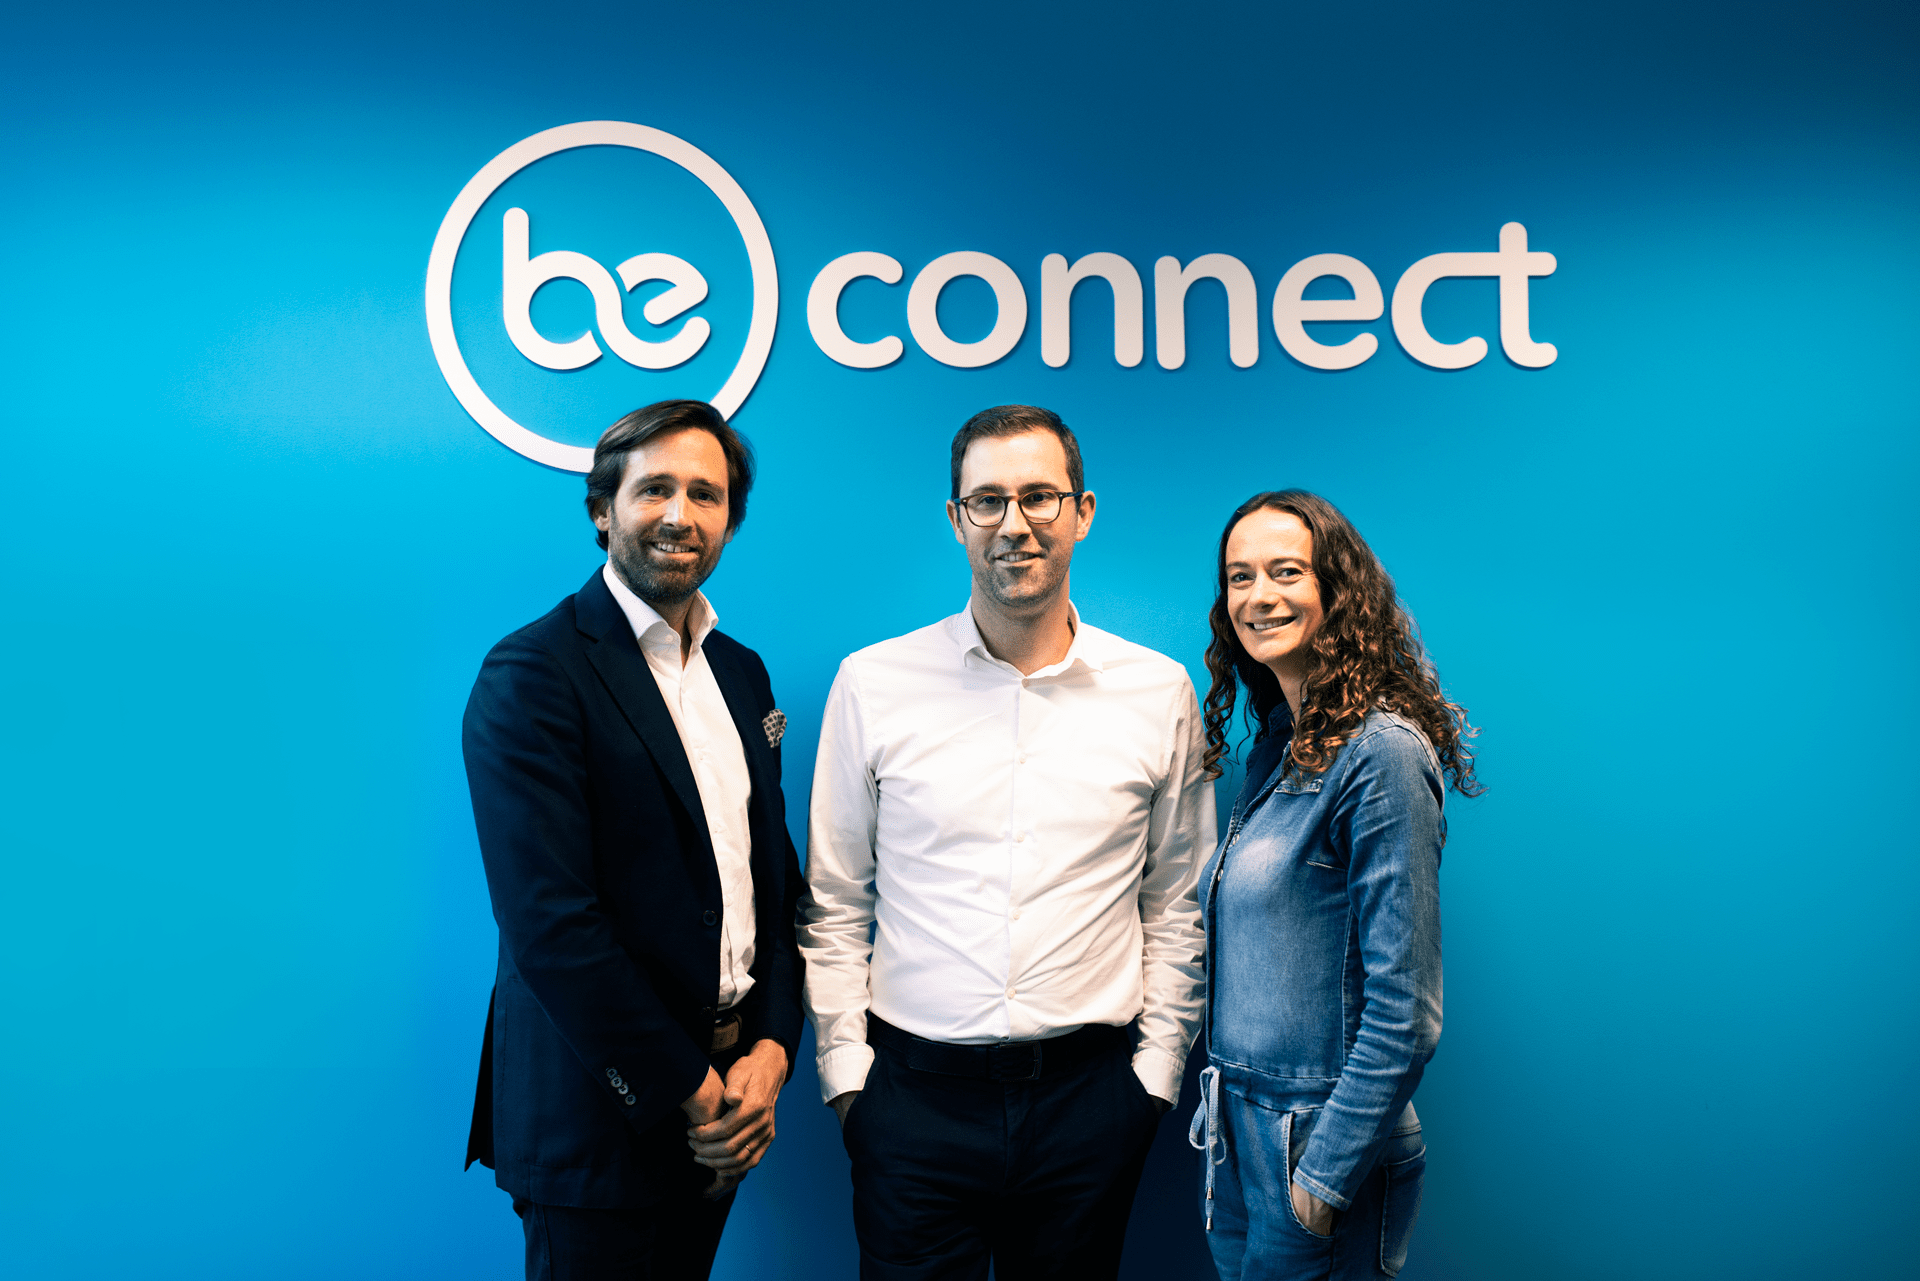 Intracto & Be Connect